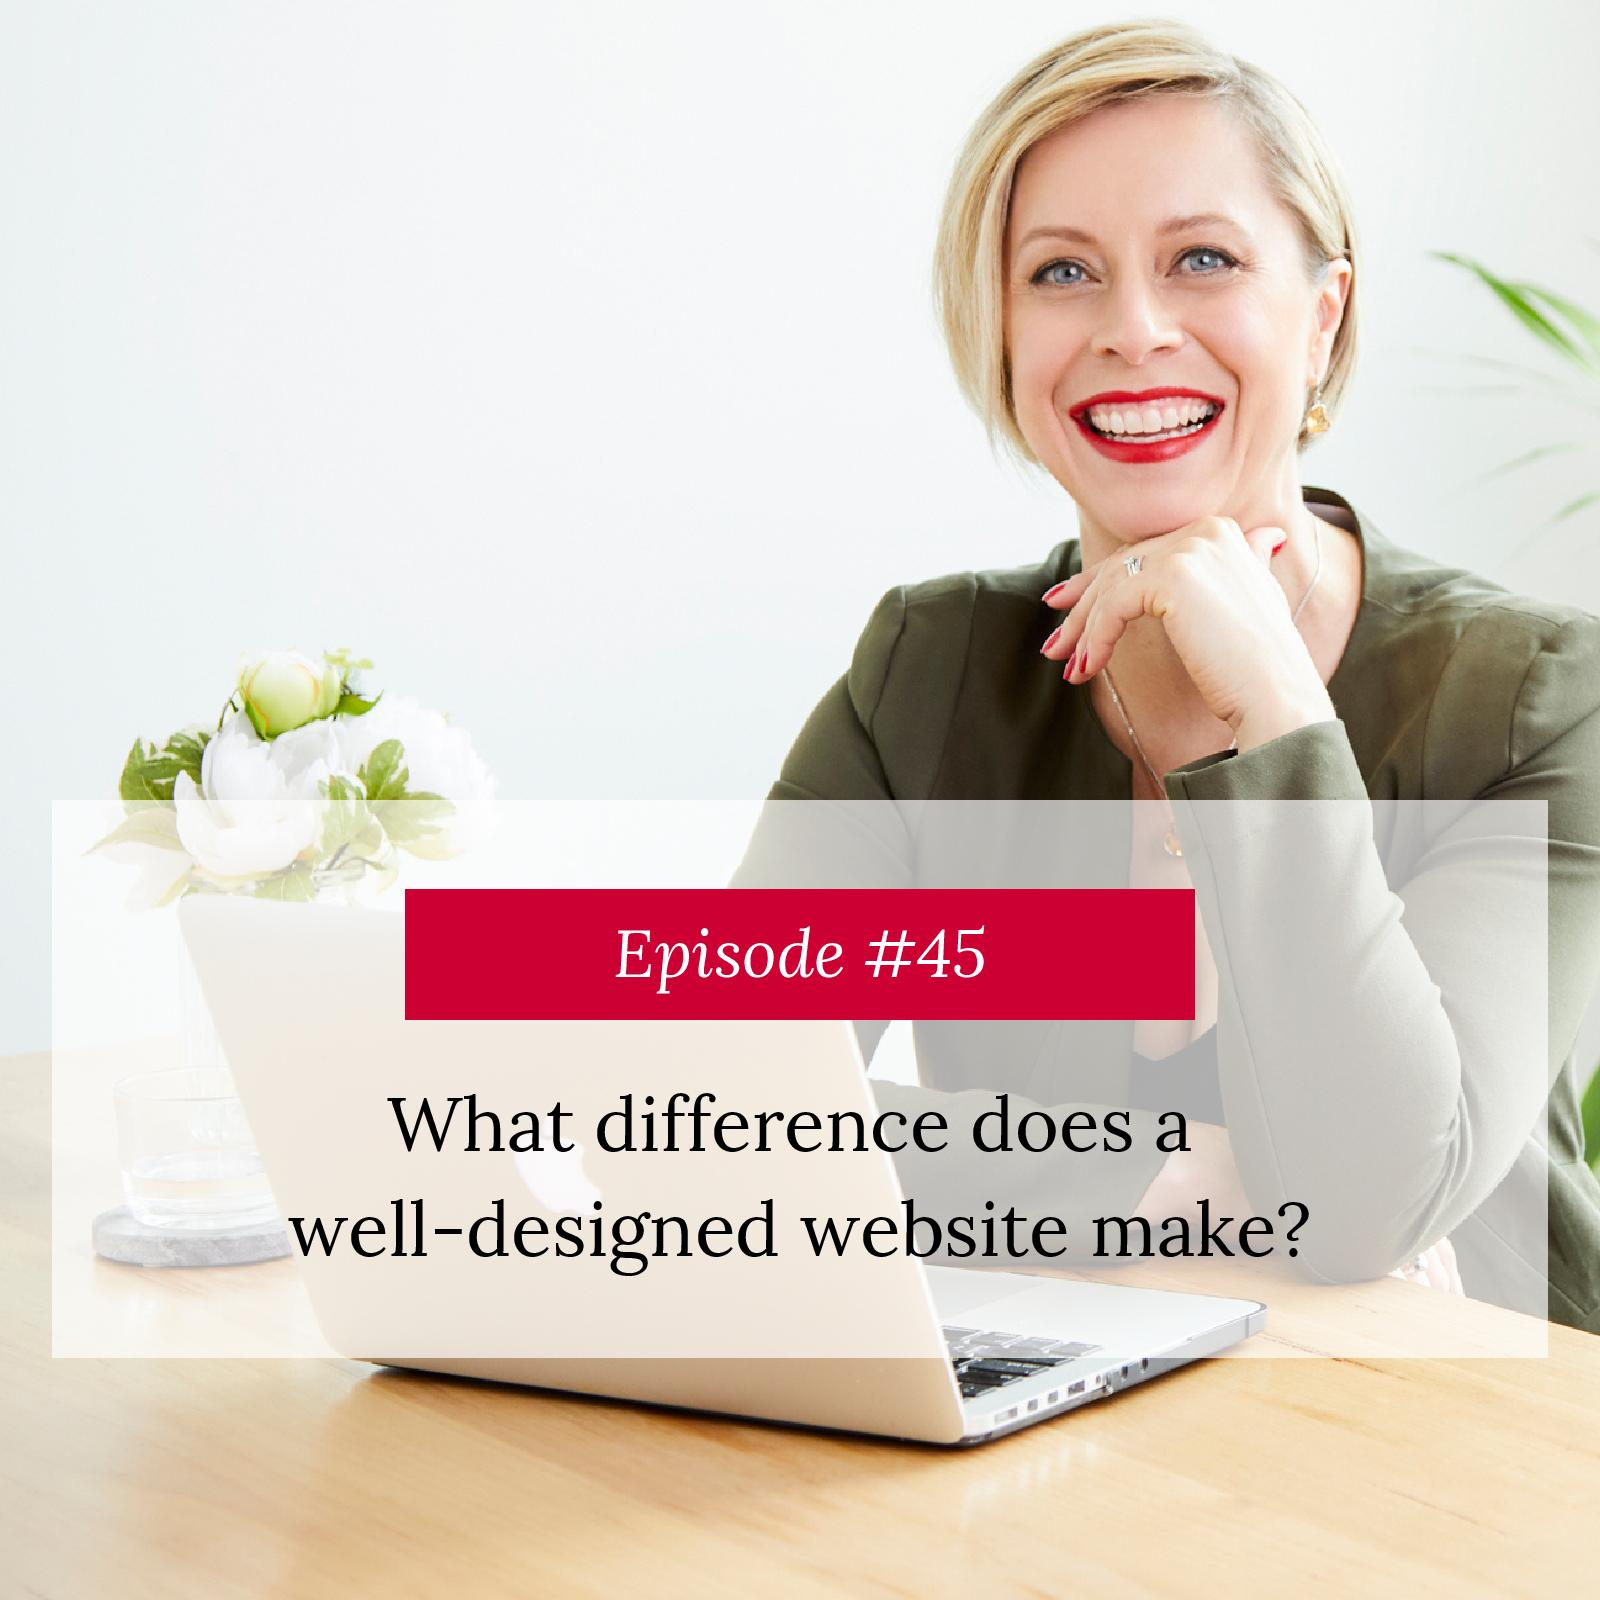 What difference does a well designed website make?